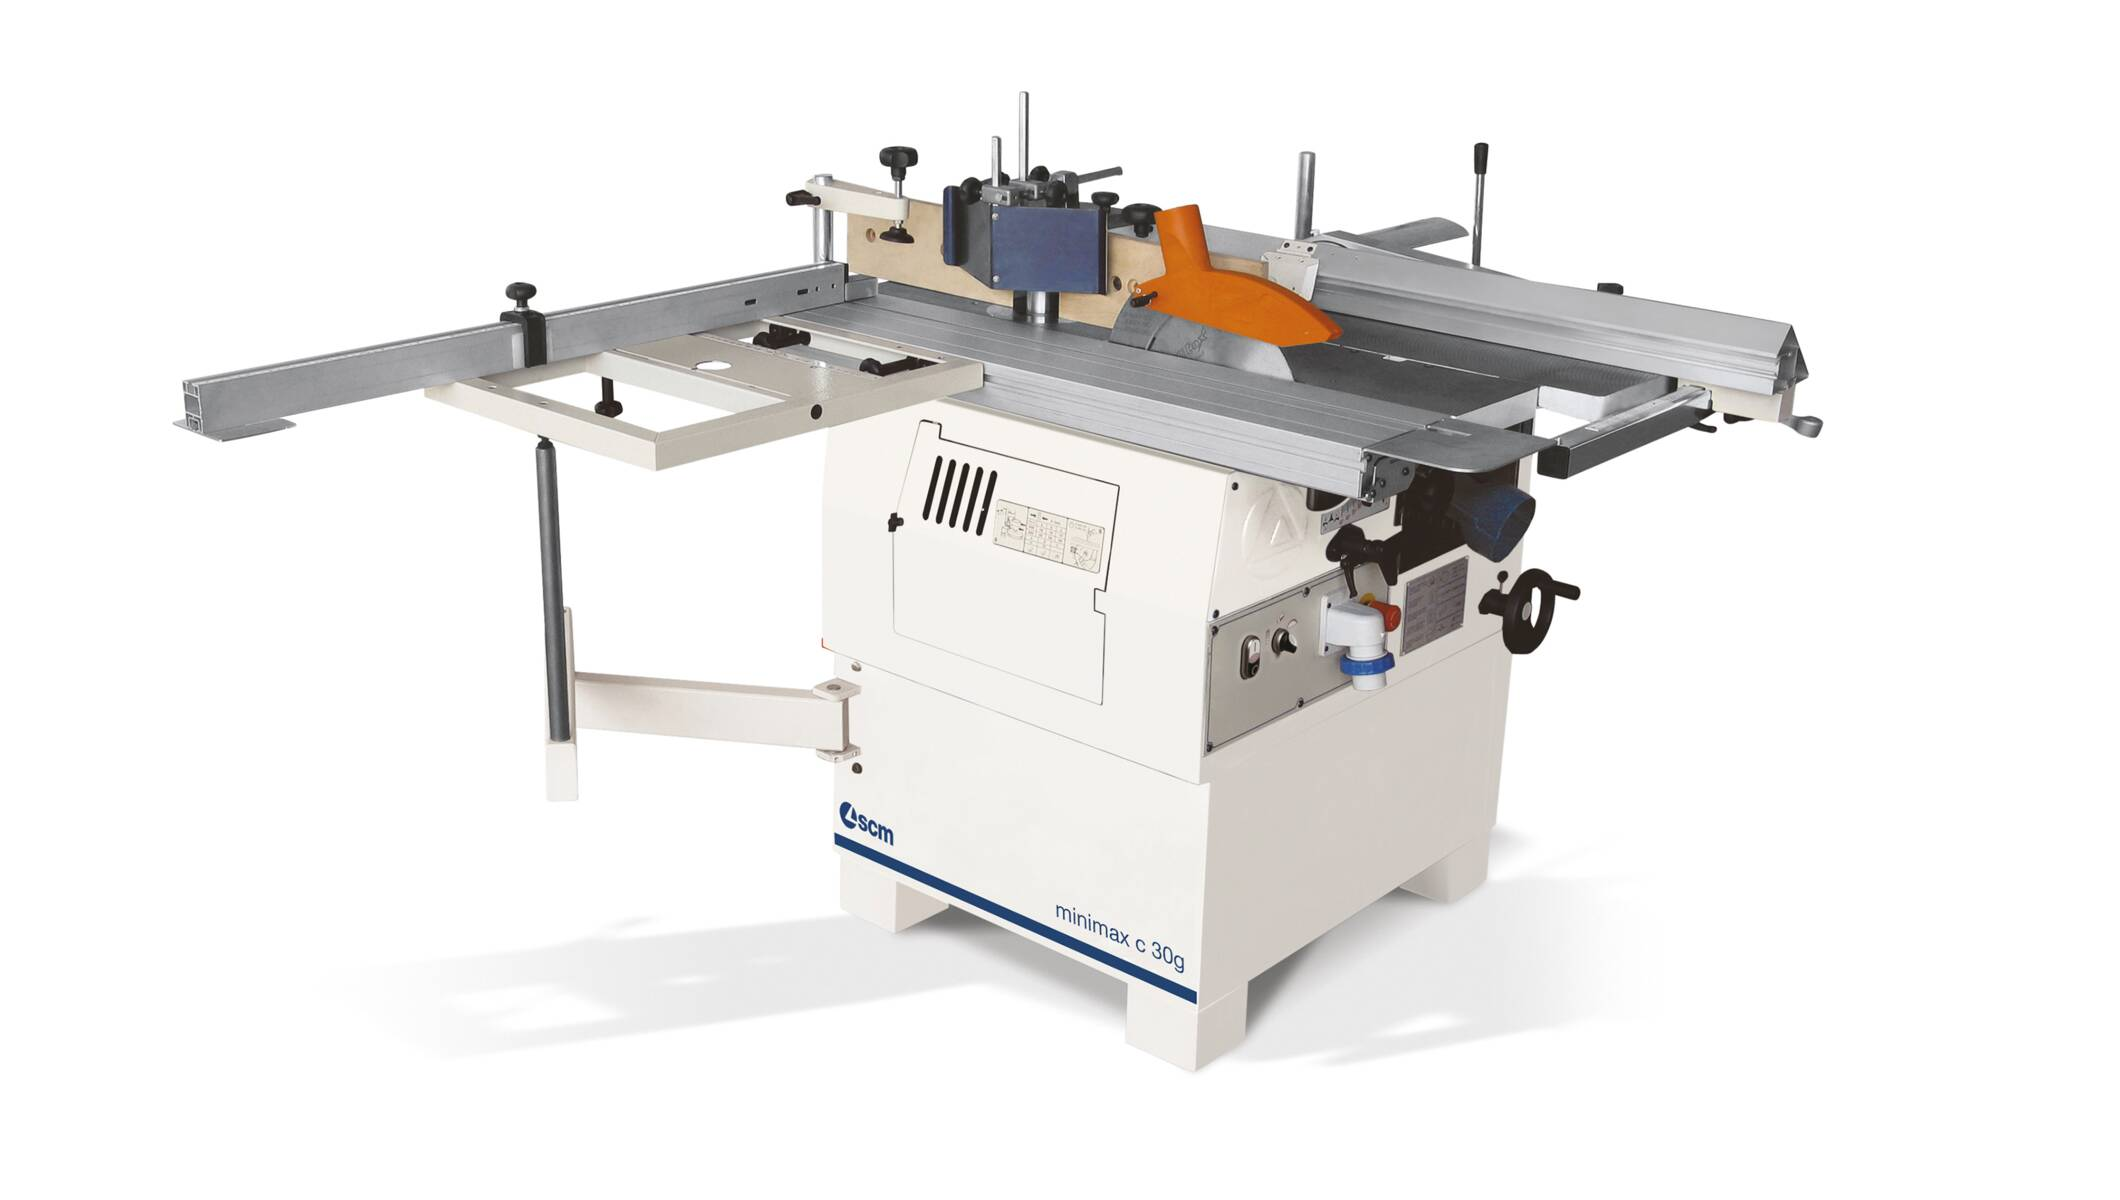 Joinery machines - Universal combination machines - minimax c 30g